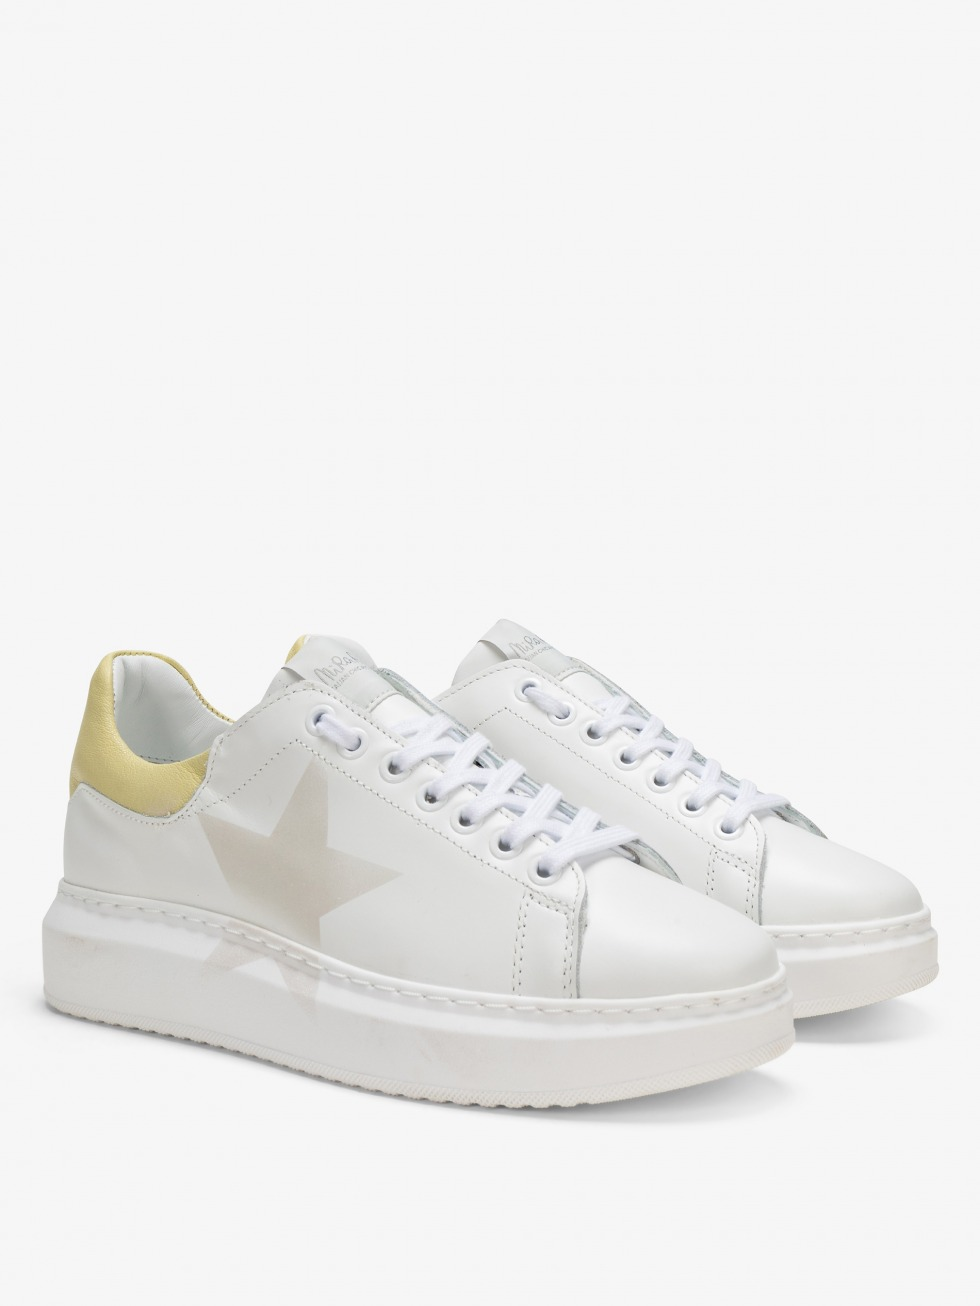 sneakers-con-plateau-bianche-angel-seventies-yellow-madreperla-stella (1)